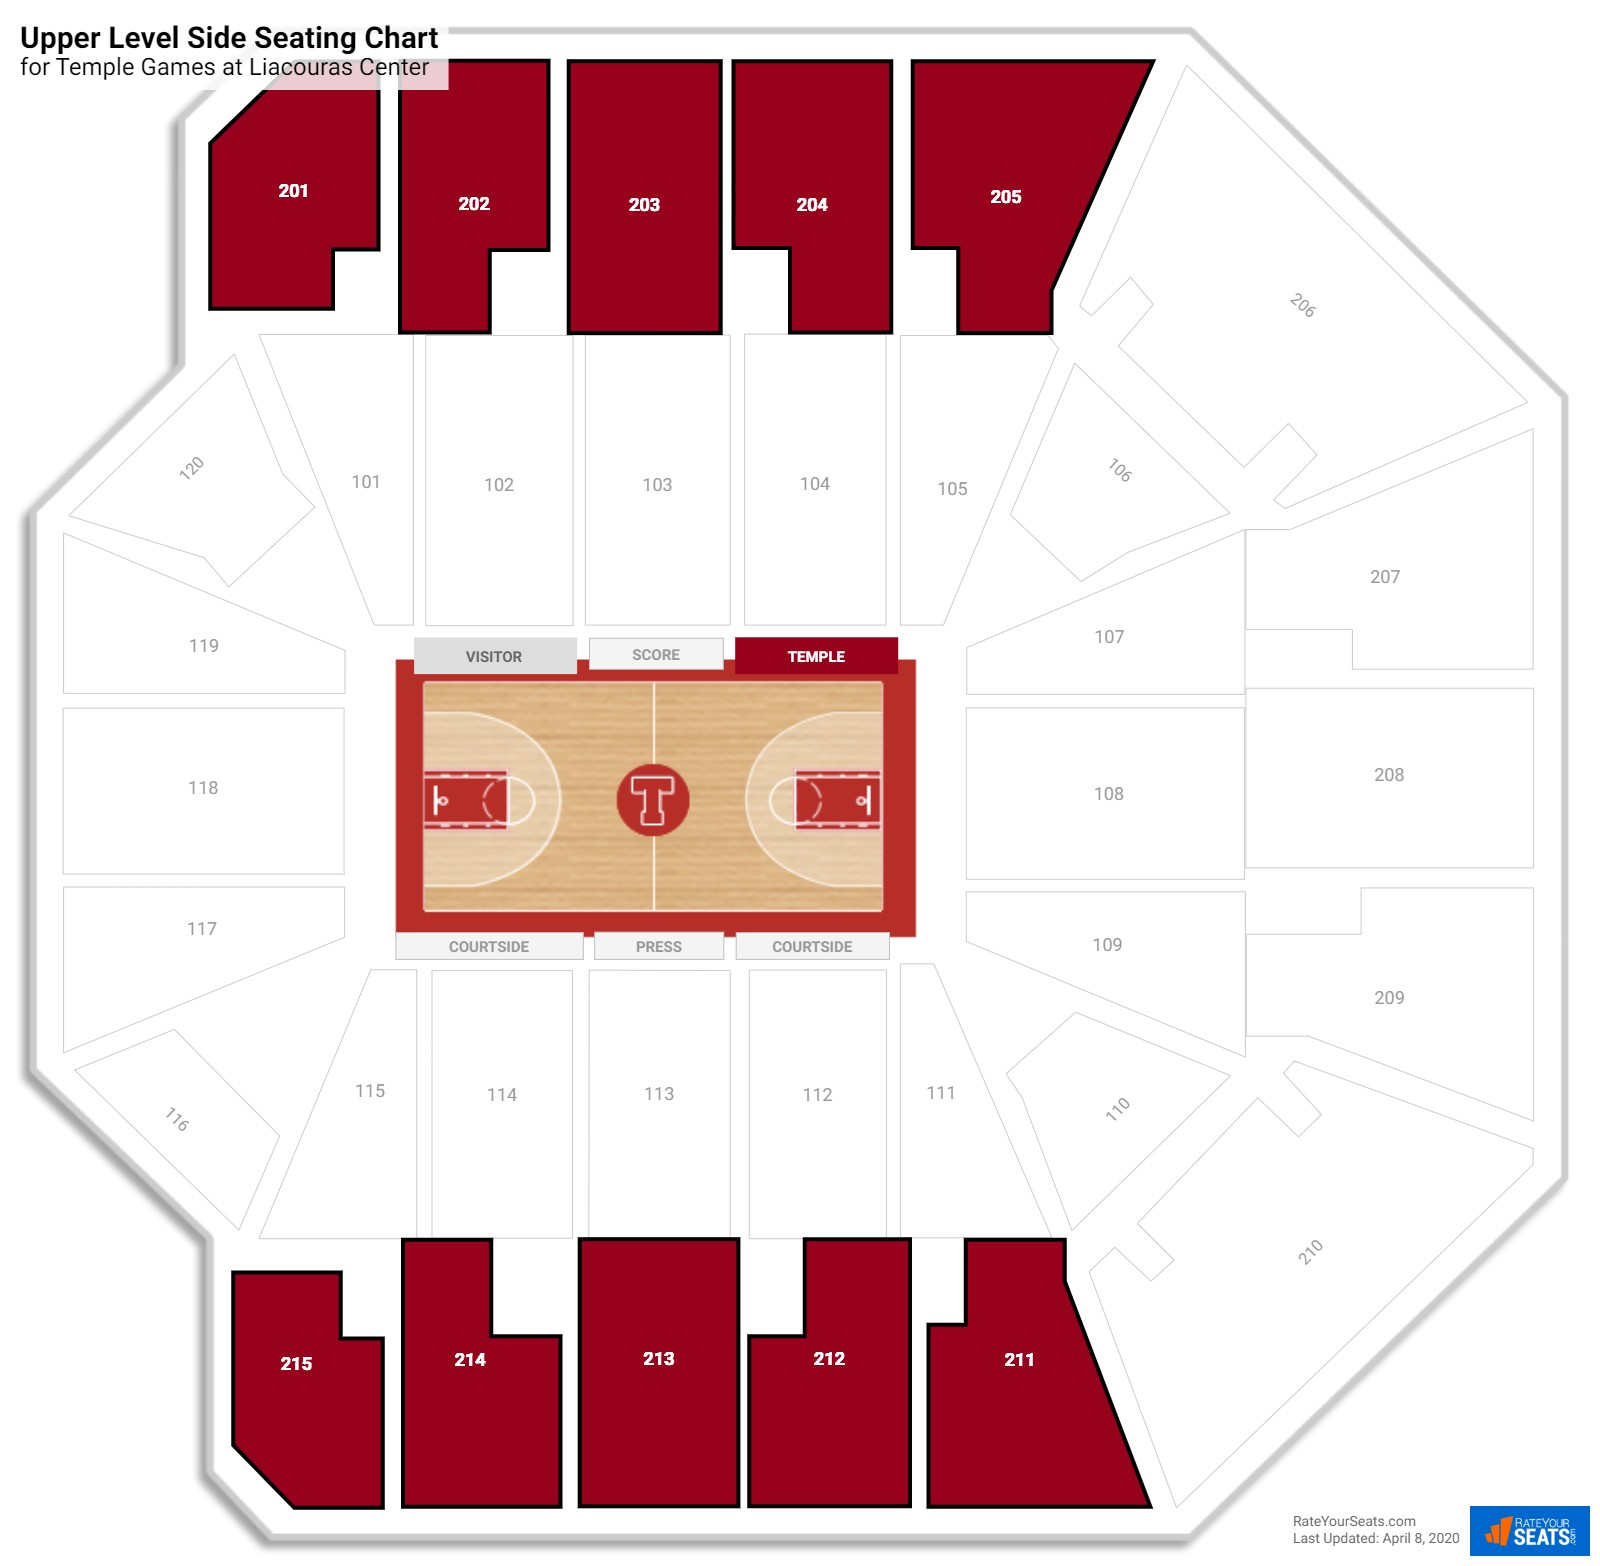 Liacouras Center Upper Level Side seating chart